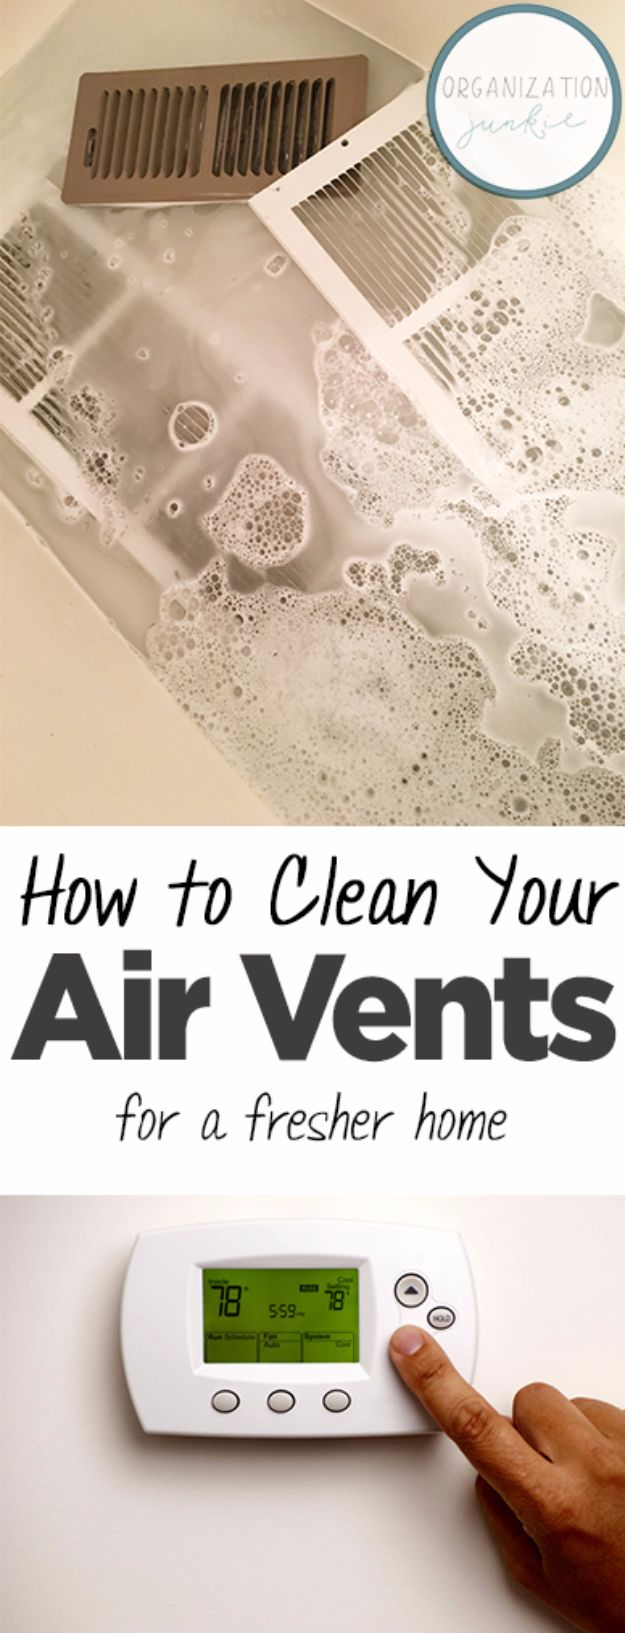 Cleaning Tips and Tricks - Clean Your Air Vents for a Fresher Home - Best Cleaning Hacks, Recipes and Tutorials - Daily Ways to Clean For Kitchen, For Couches, Bathroom, Bedroom, Laundry, Floors, Furniture, Windows, Cleaners and More for Cleaning Your Home- Quick Ideas for Lazy People - Cool Cleaning Hack Tutorial - DIY Projects and Crafts by DIY JOY http://diyjoy.com/diy-cleaning-tips-tricks